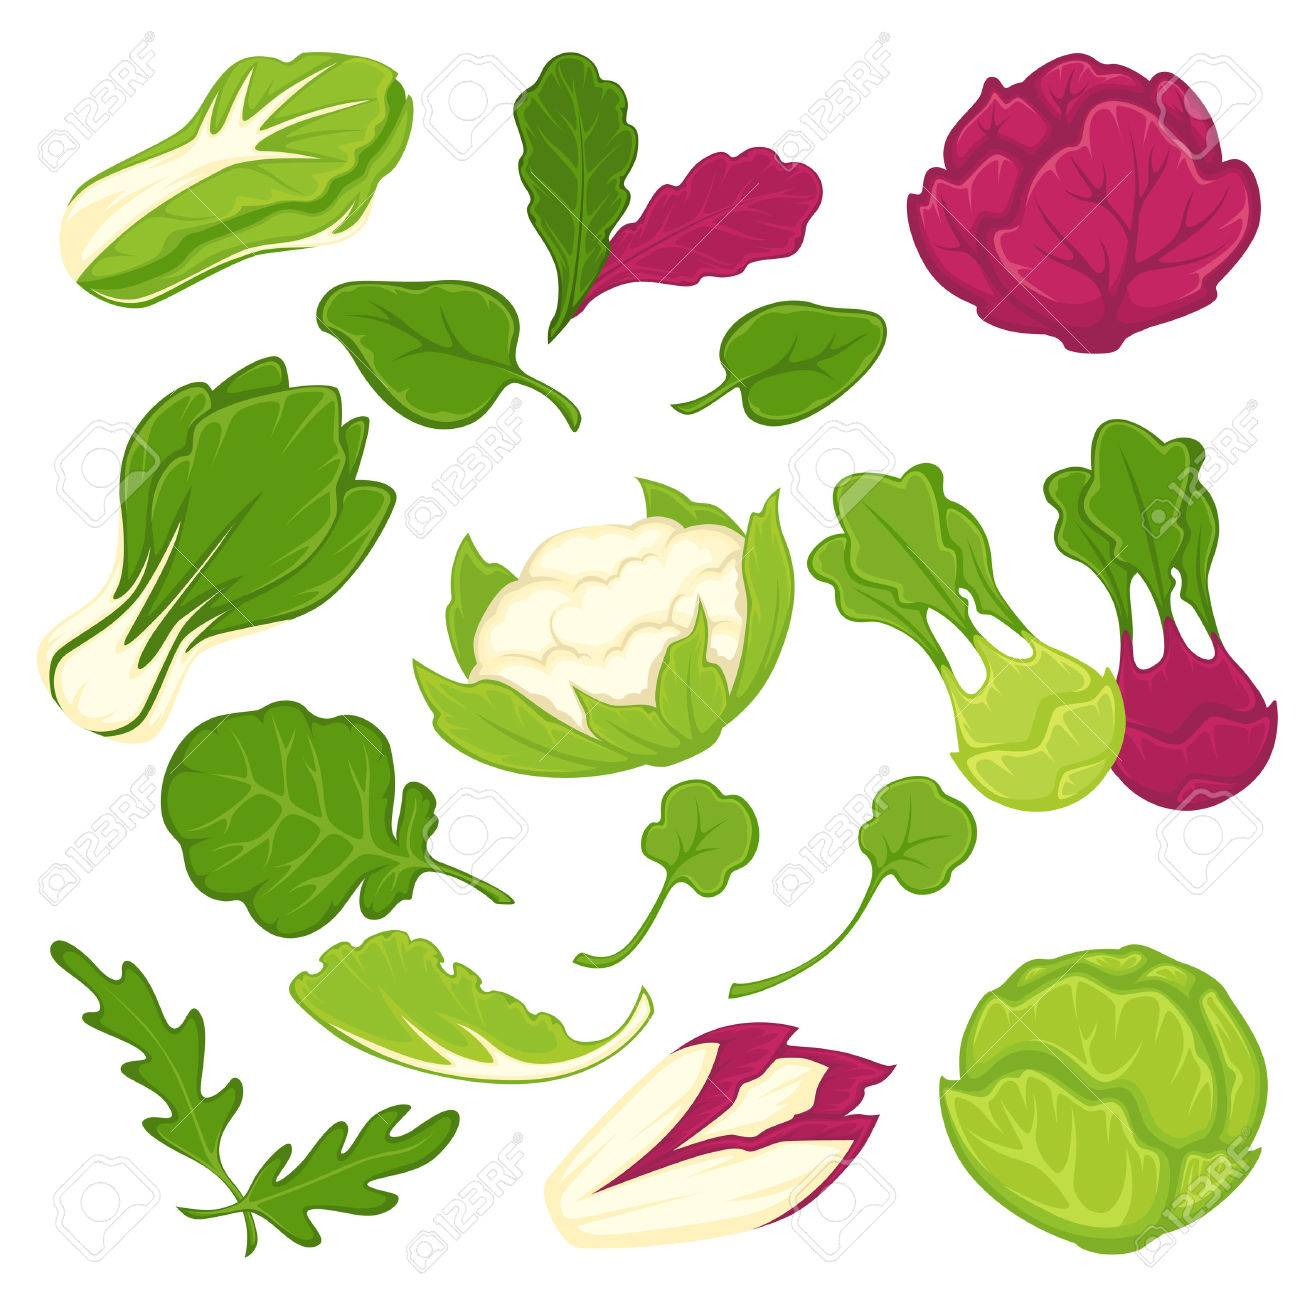 Lettuce salads leafy vegetables vector isolated icons set - 73142021